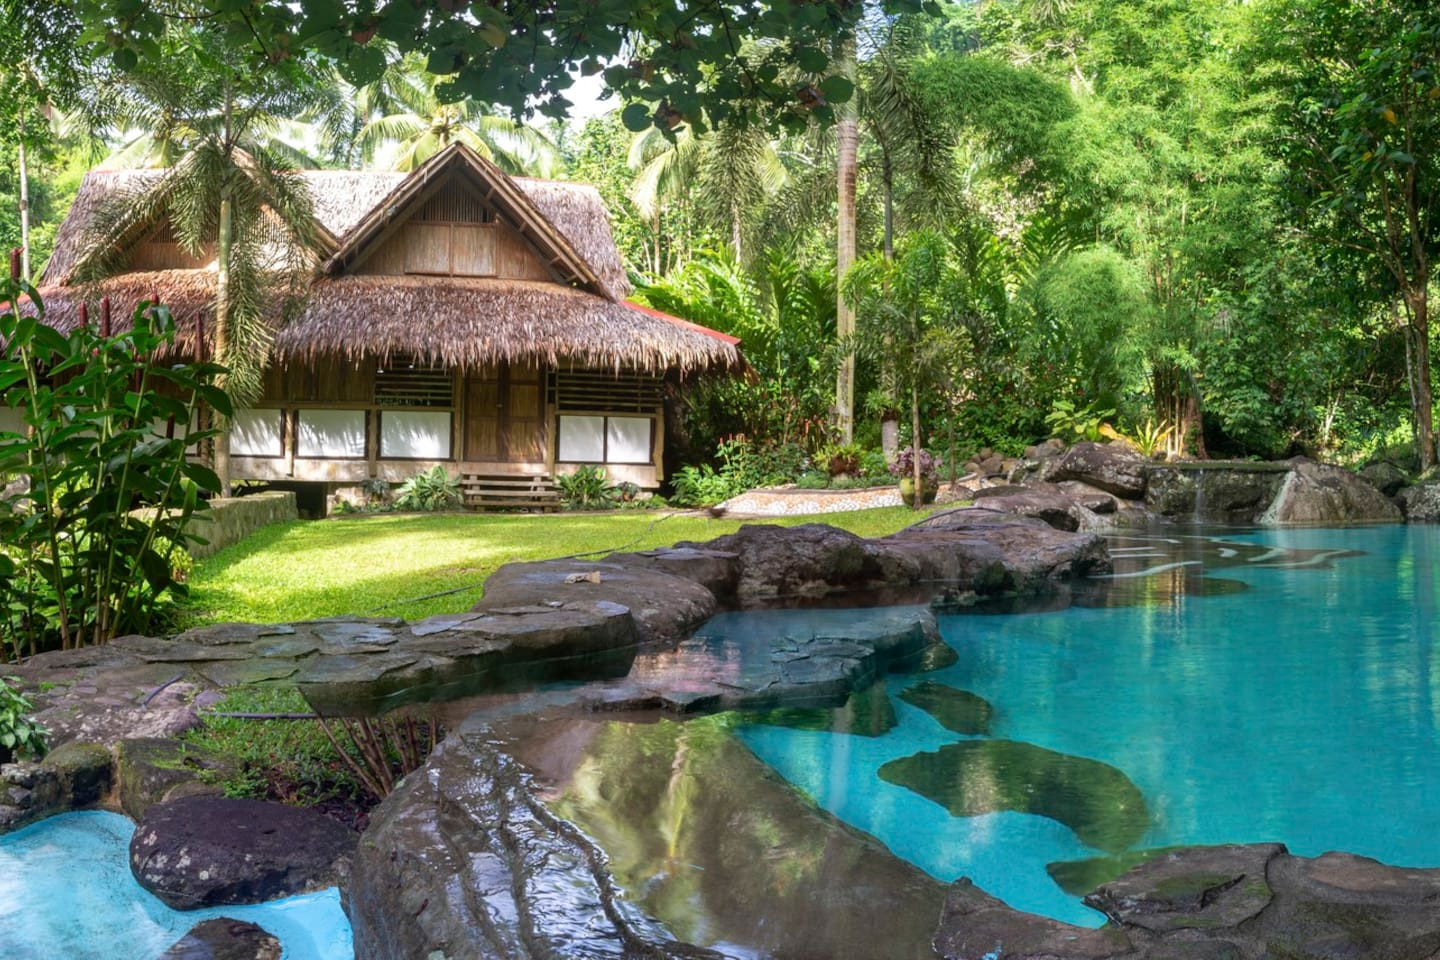 The Jungle house. What's not to like? Natural river fed pools for you to relax and cool off in.